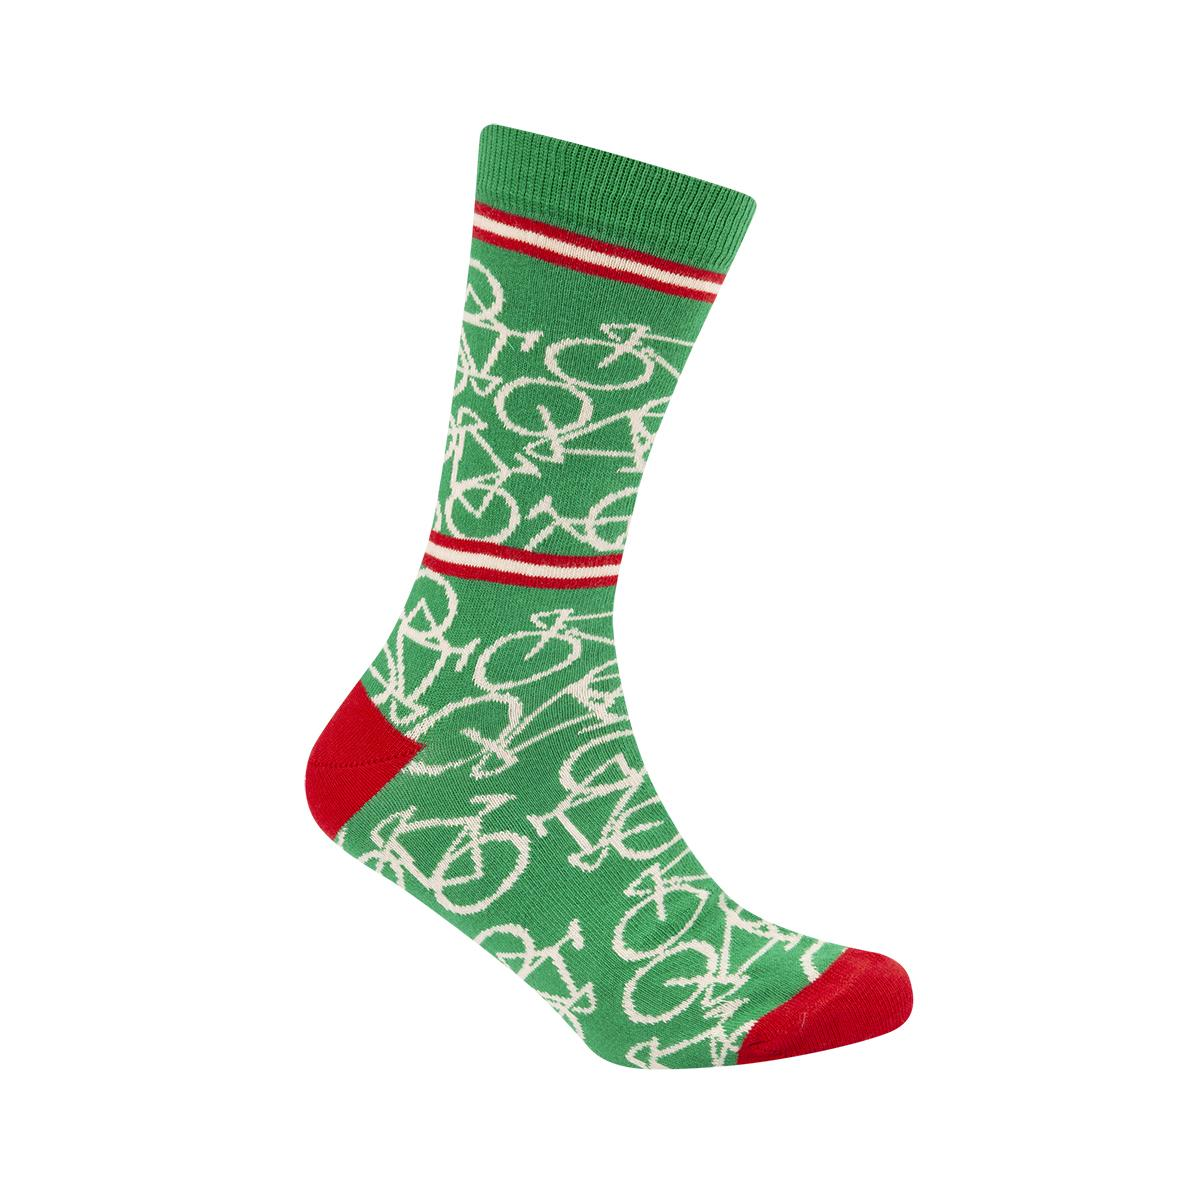 | Le Patron Casual sokken Groen Ecru / Bicycle socks italian green